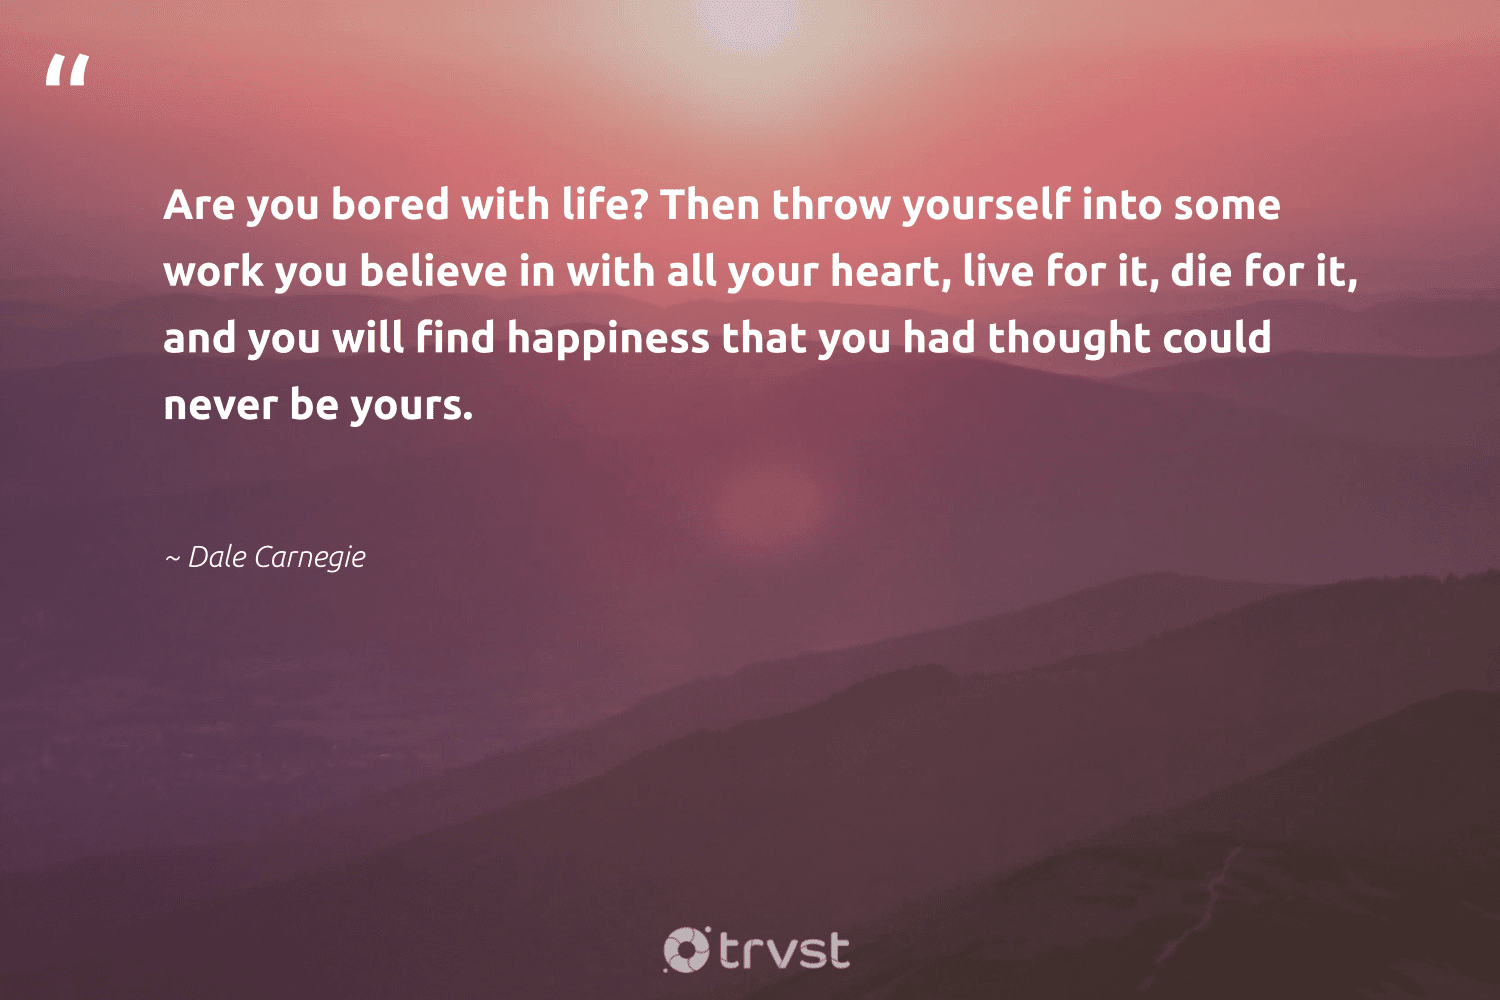 """""""Are you bored with life? Then throw yourself into some work you believe in with all your heart, live for it, die for it, and you will find happiness that you had thought could never be yours.""""  - Dale Carnegie #trvst #quotes #happiness #togetherwecan #dogood #mindset #socialimpact #changemakers #bethechange #health #thinkgreen #begreat"""